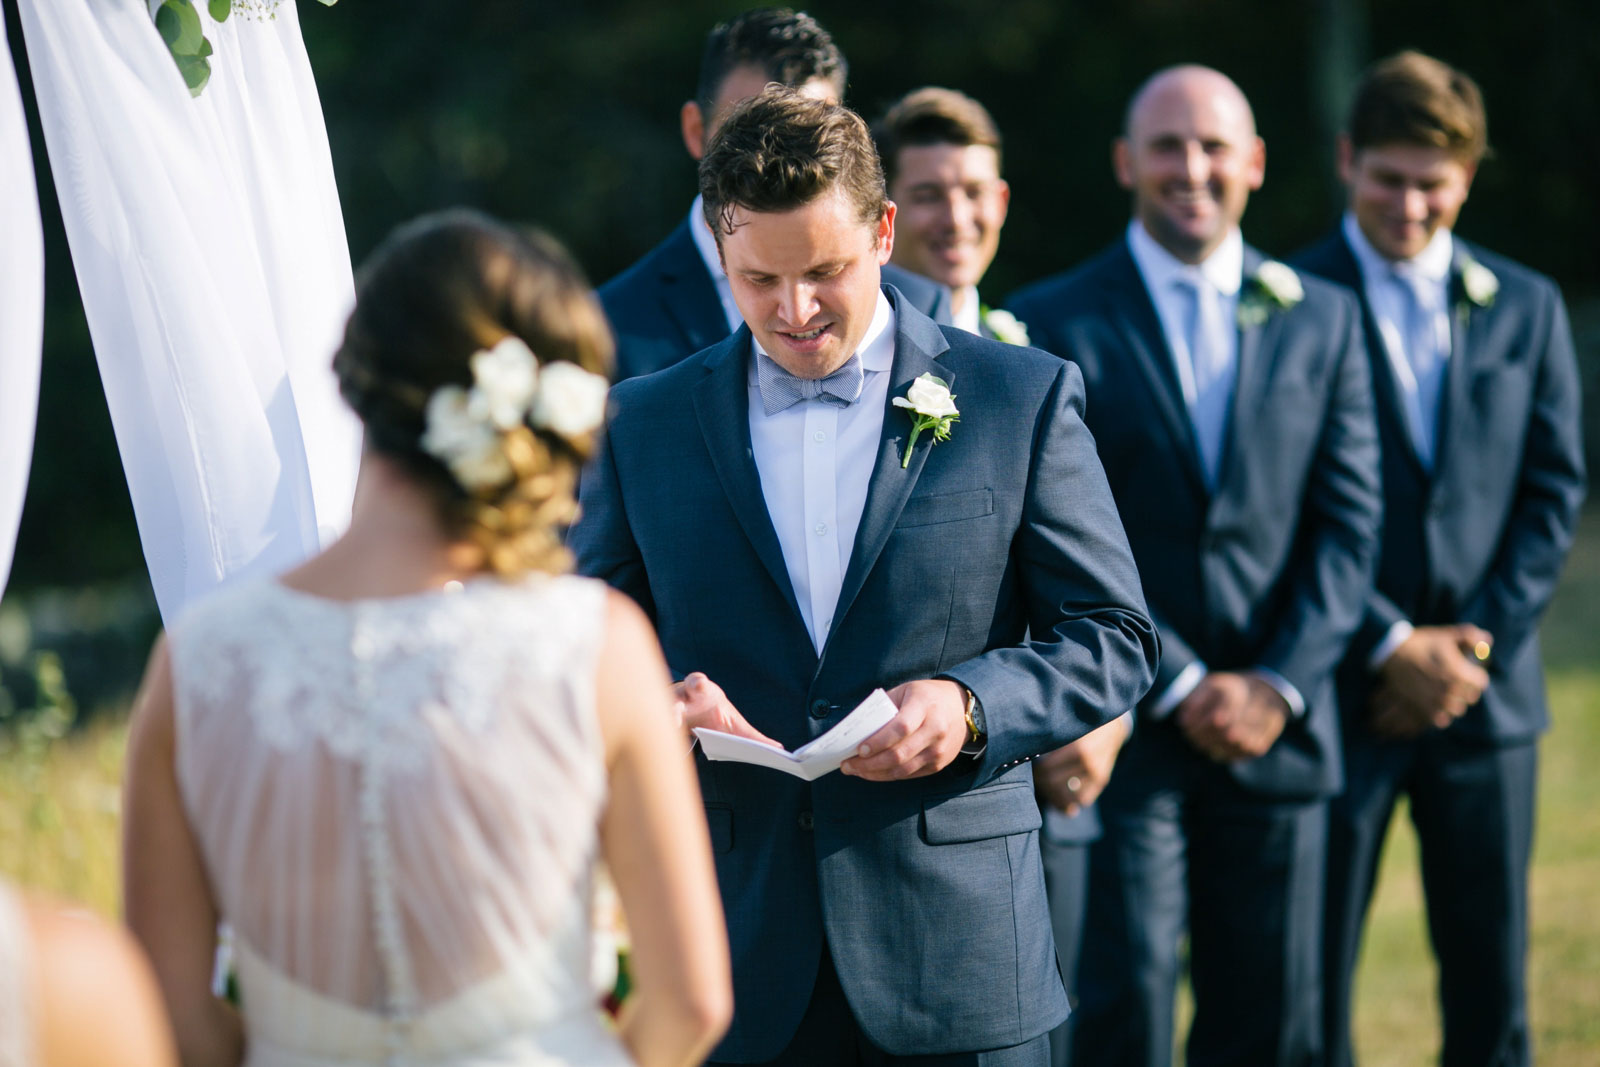 Groom saying his vows, groomsmen smiling in the background, summer outdoor wedding ceremony